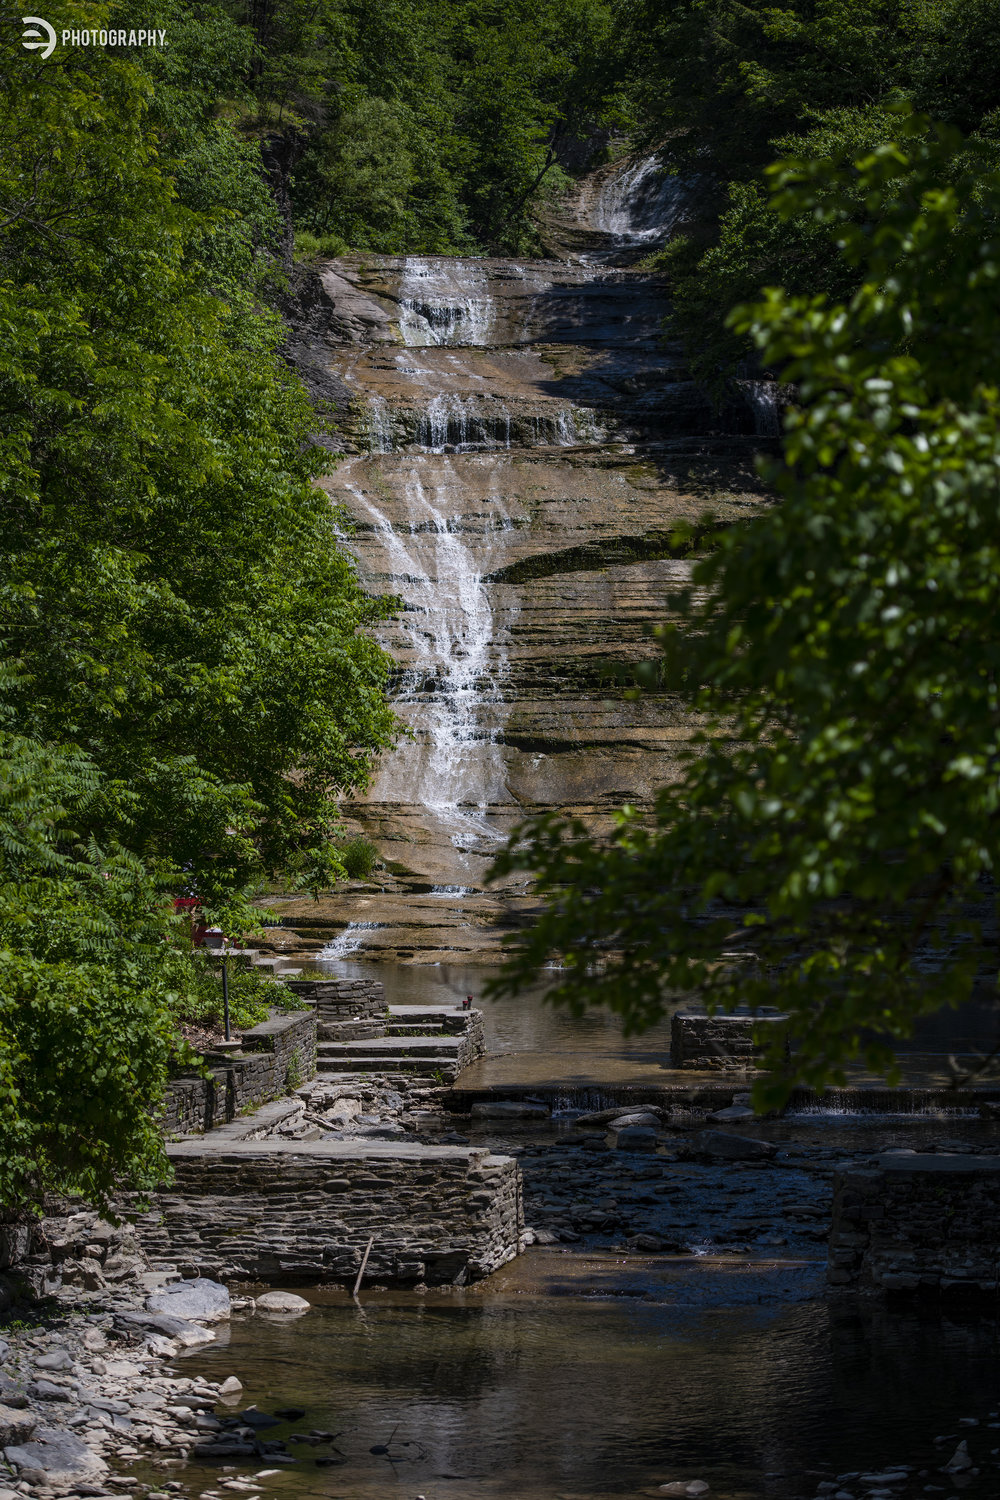 The view of Buttermilk Falls from the footbridge that leads to the gorge trail.